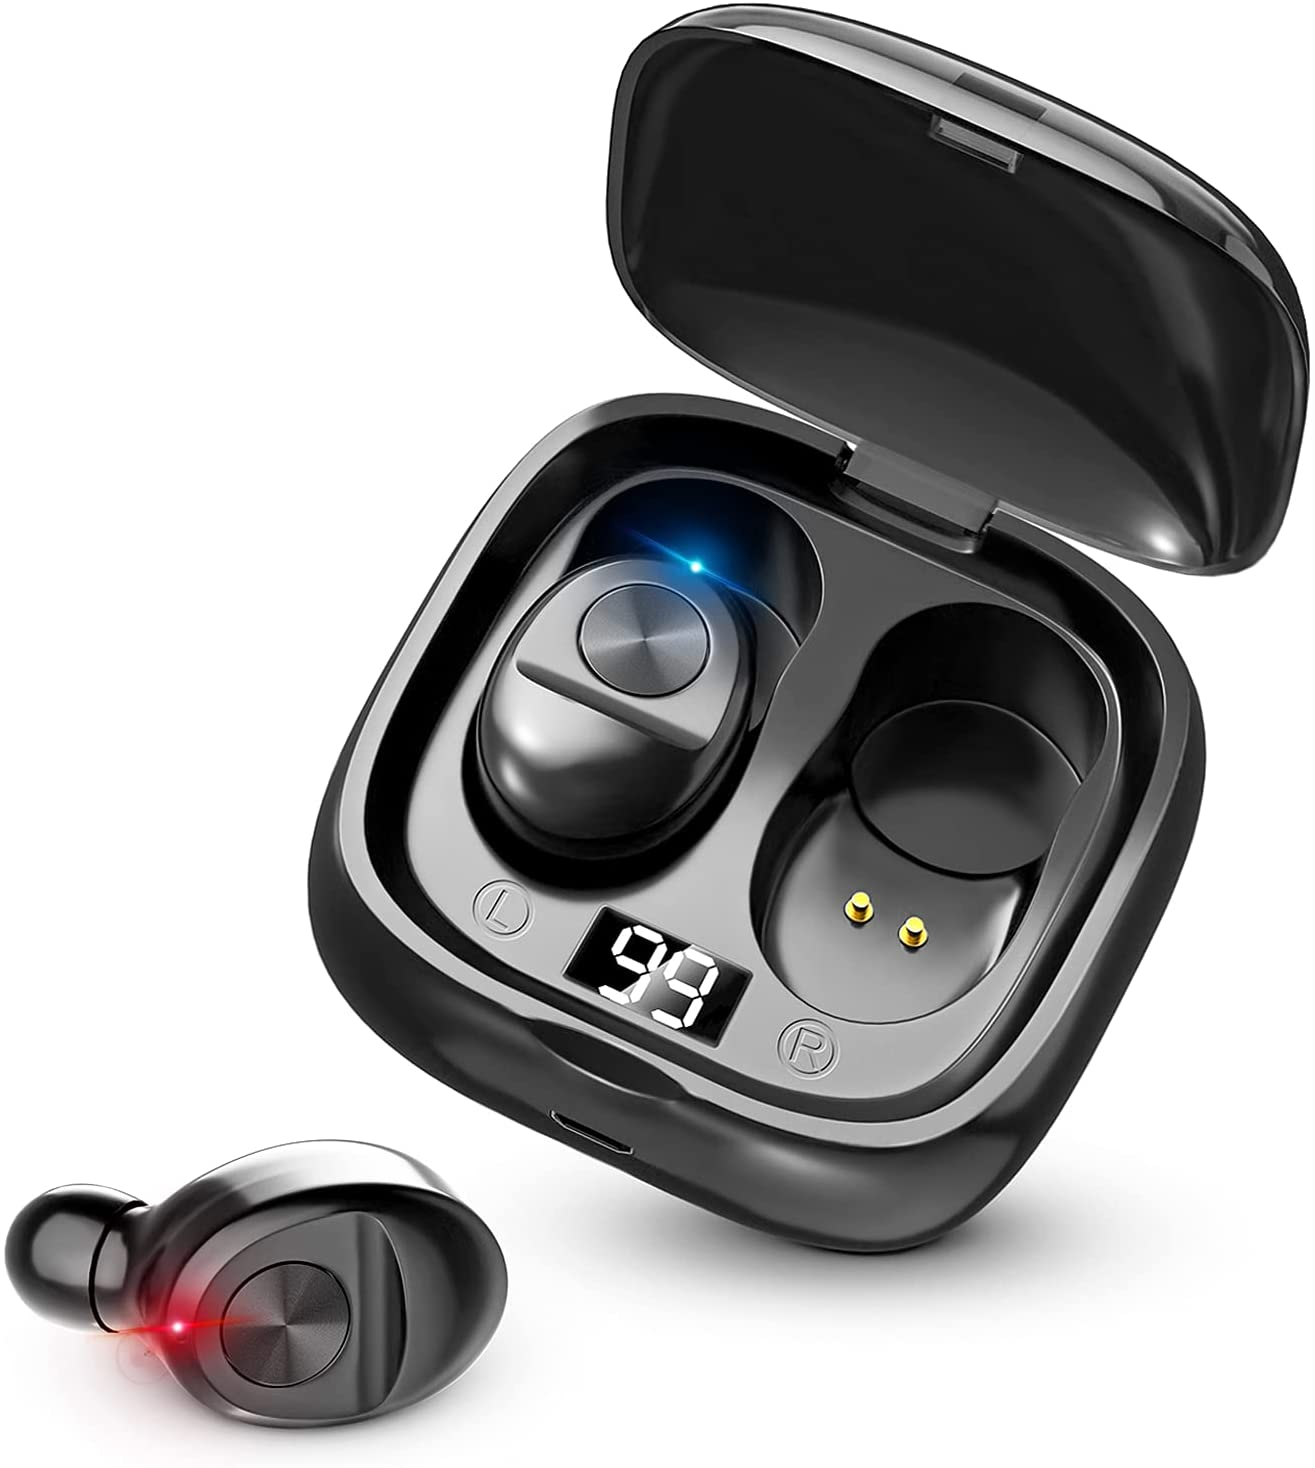 Kindpack Earbuds 5.0 Mini Headphones with Char Washington Mall Earphones in-Ear Don't miss the campaign